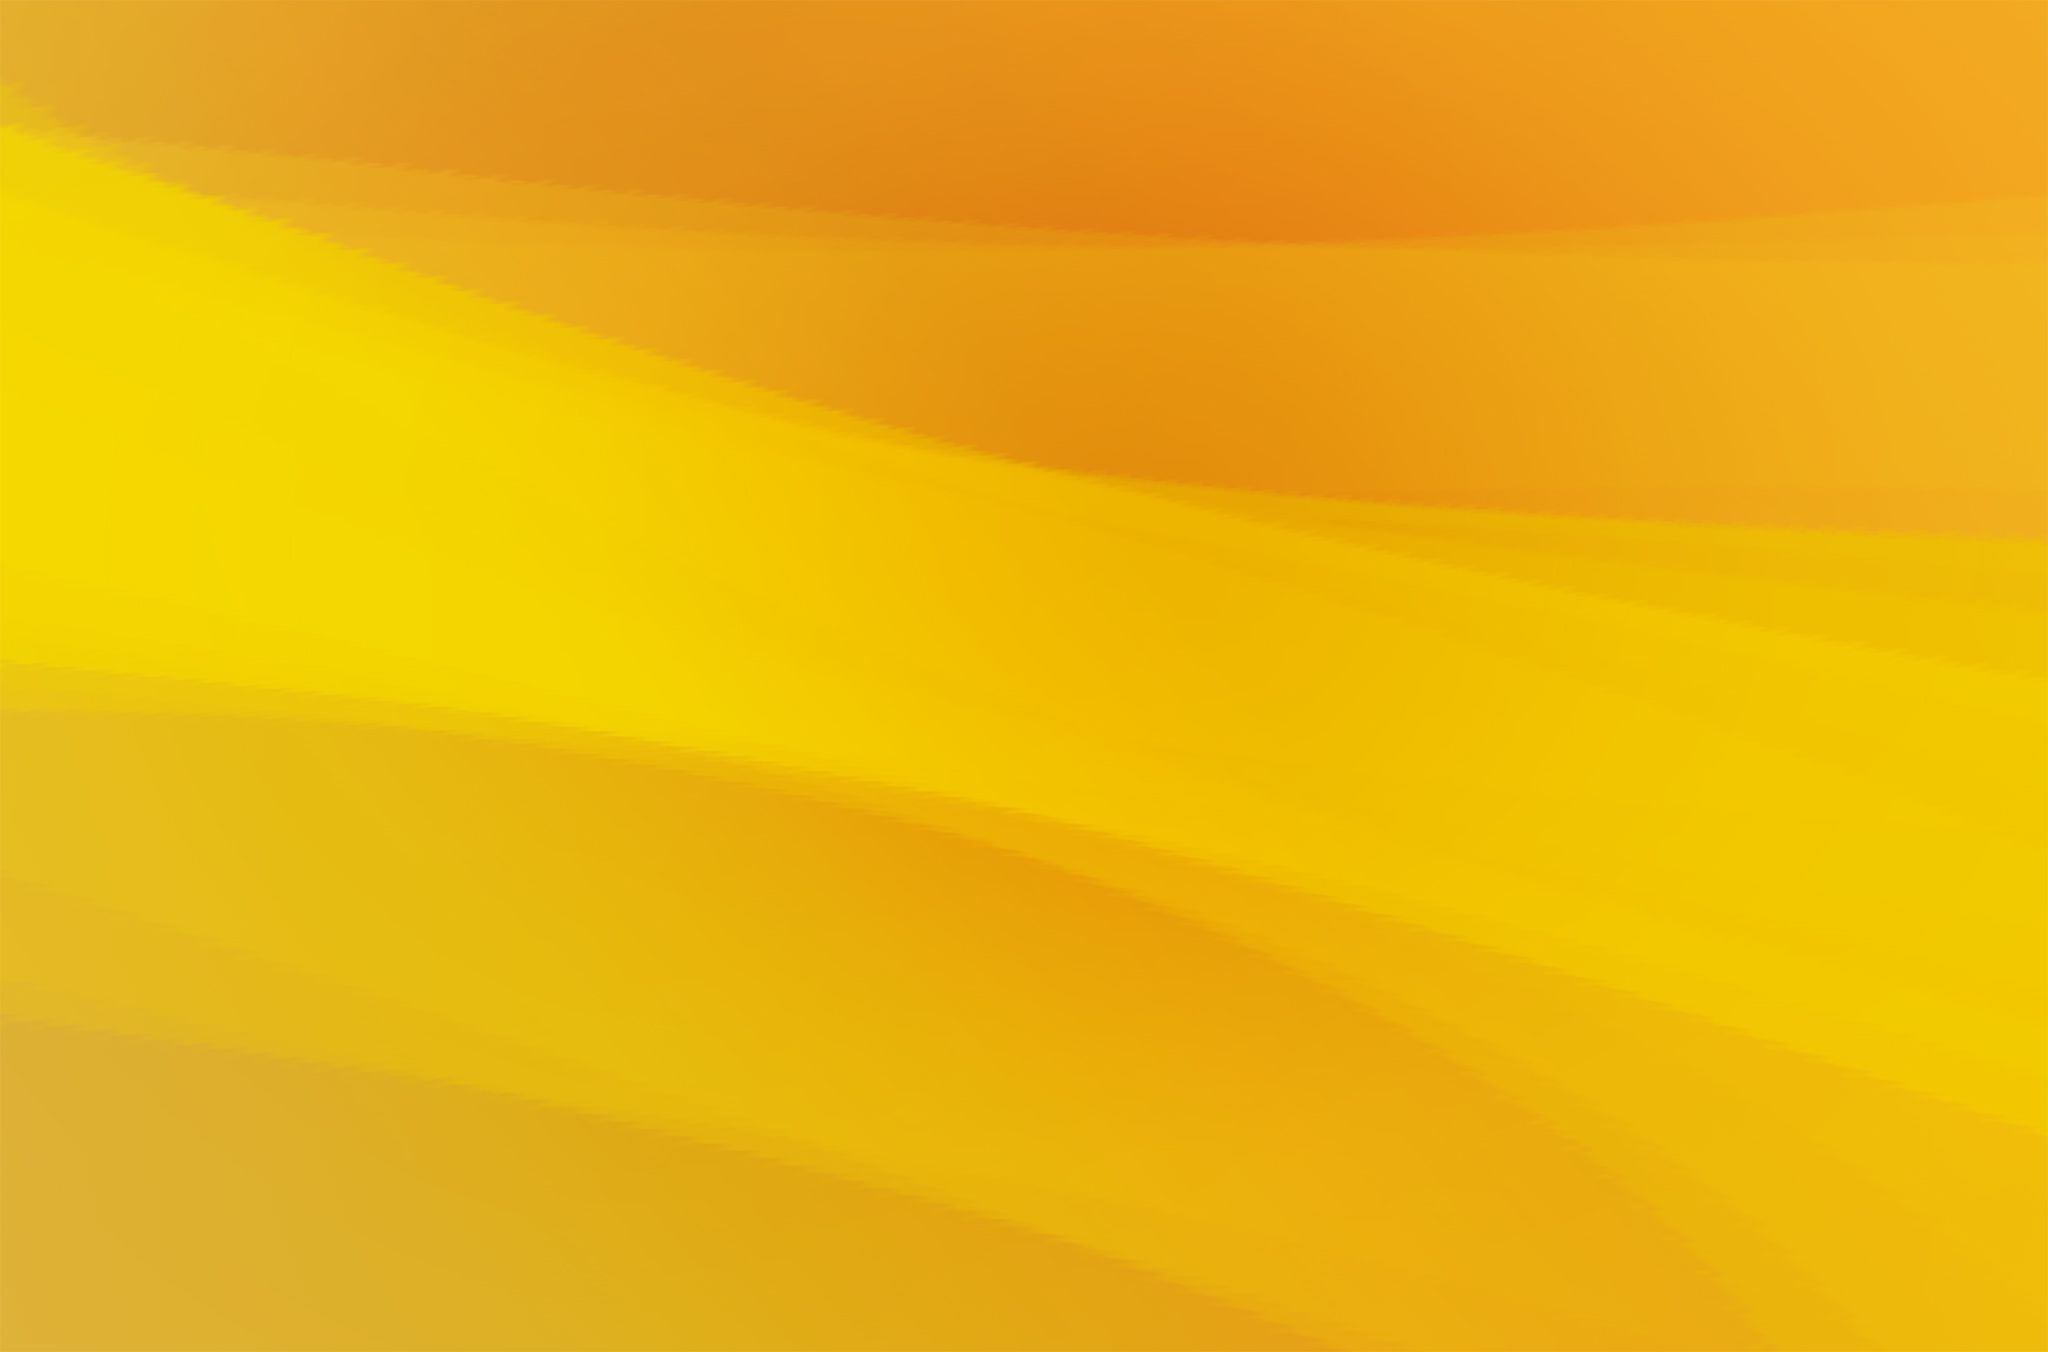 abstract, Orange, Minimalism Wallpapers HD / Desktop and Mobile Backgrounds